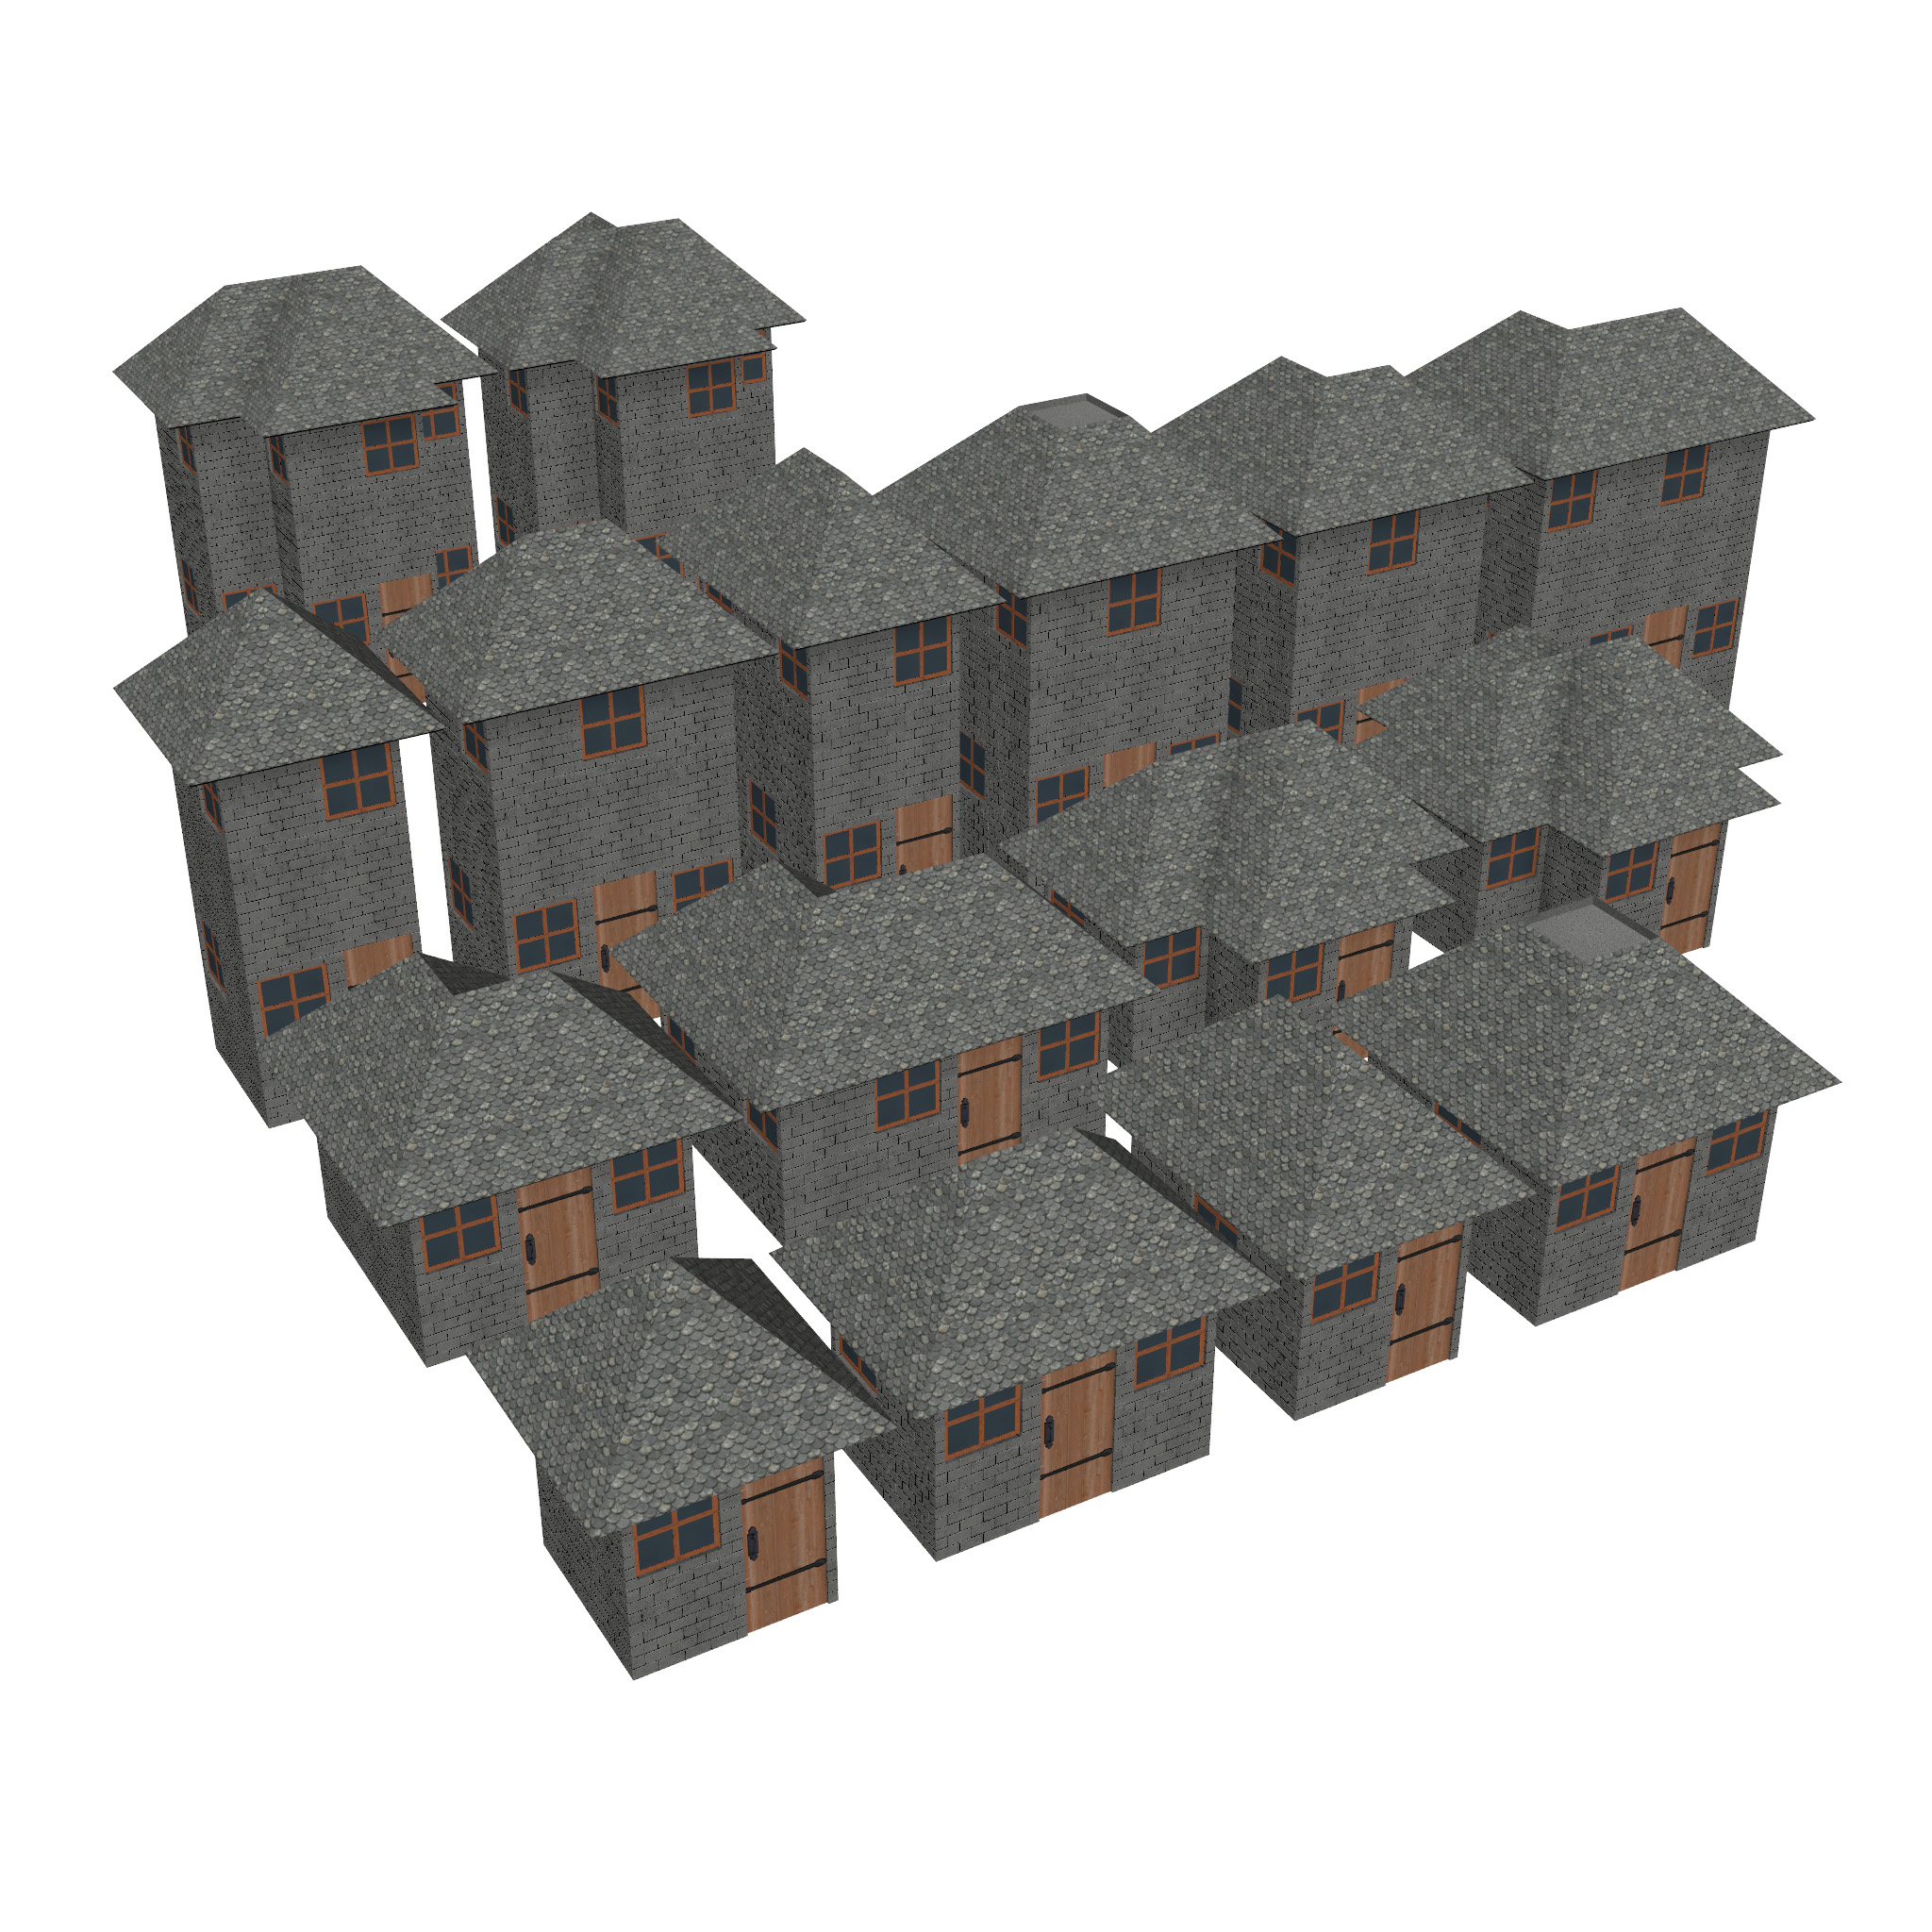 modular brick house set 3d model fbx ma mb 271393